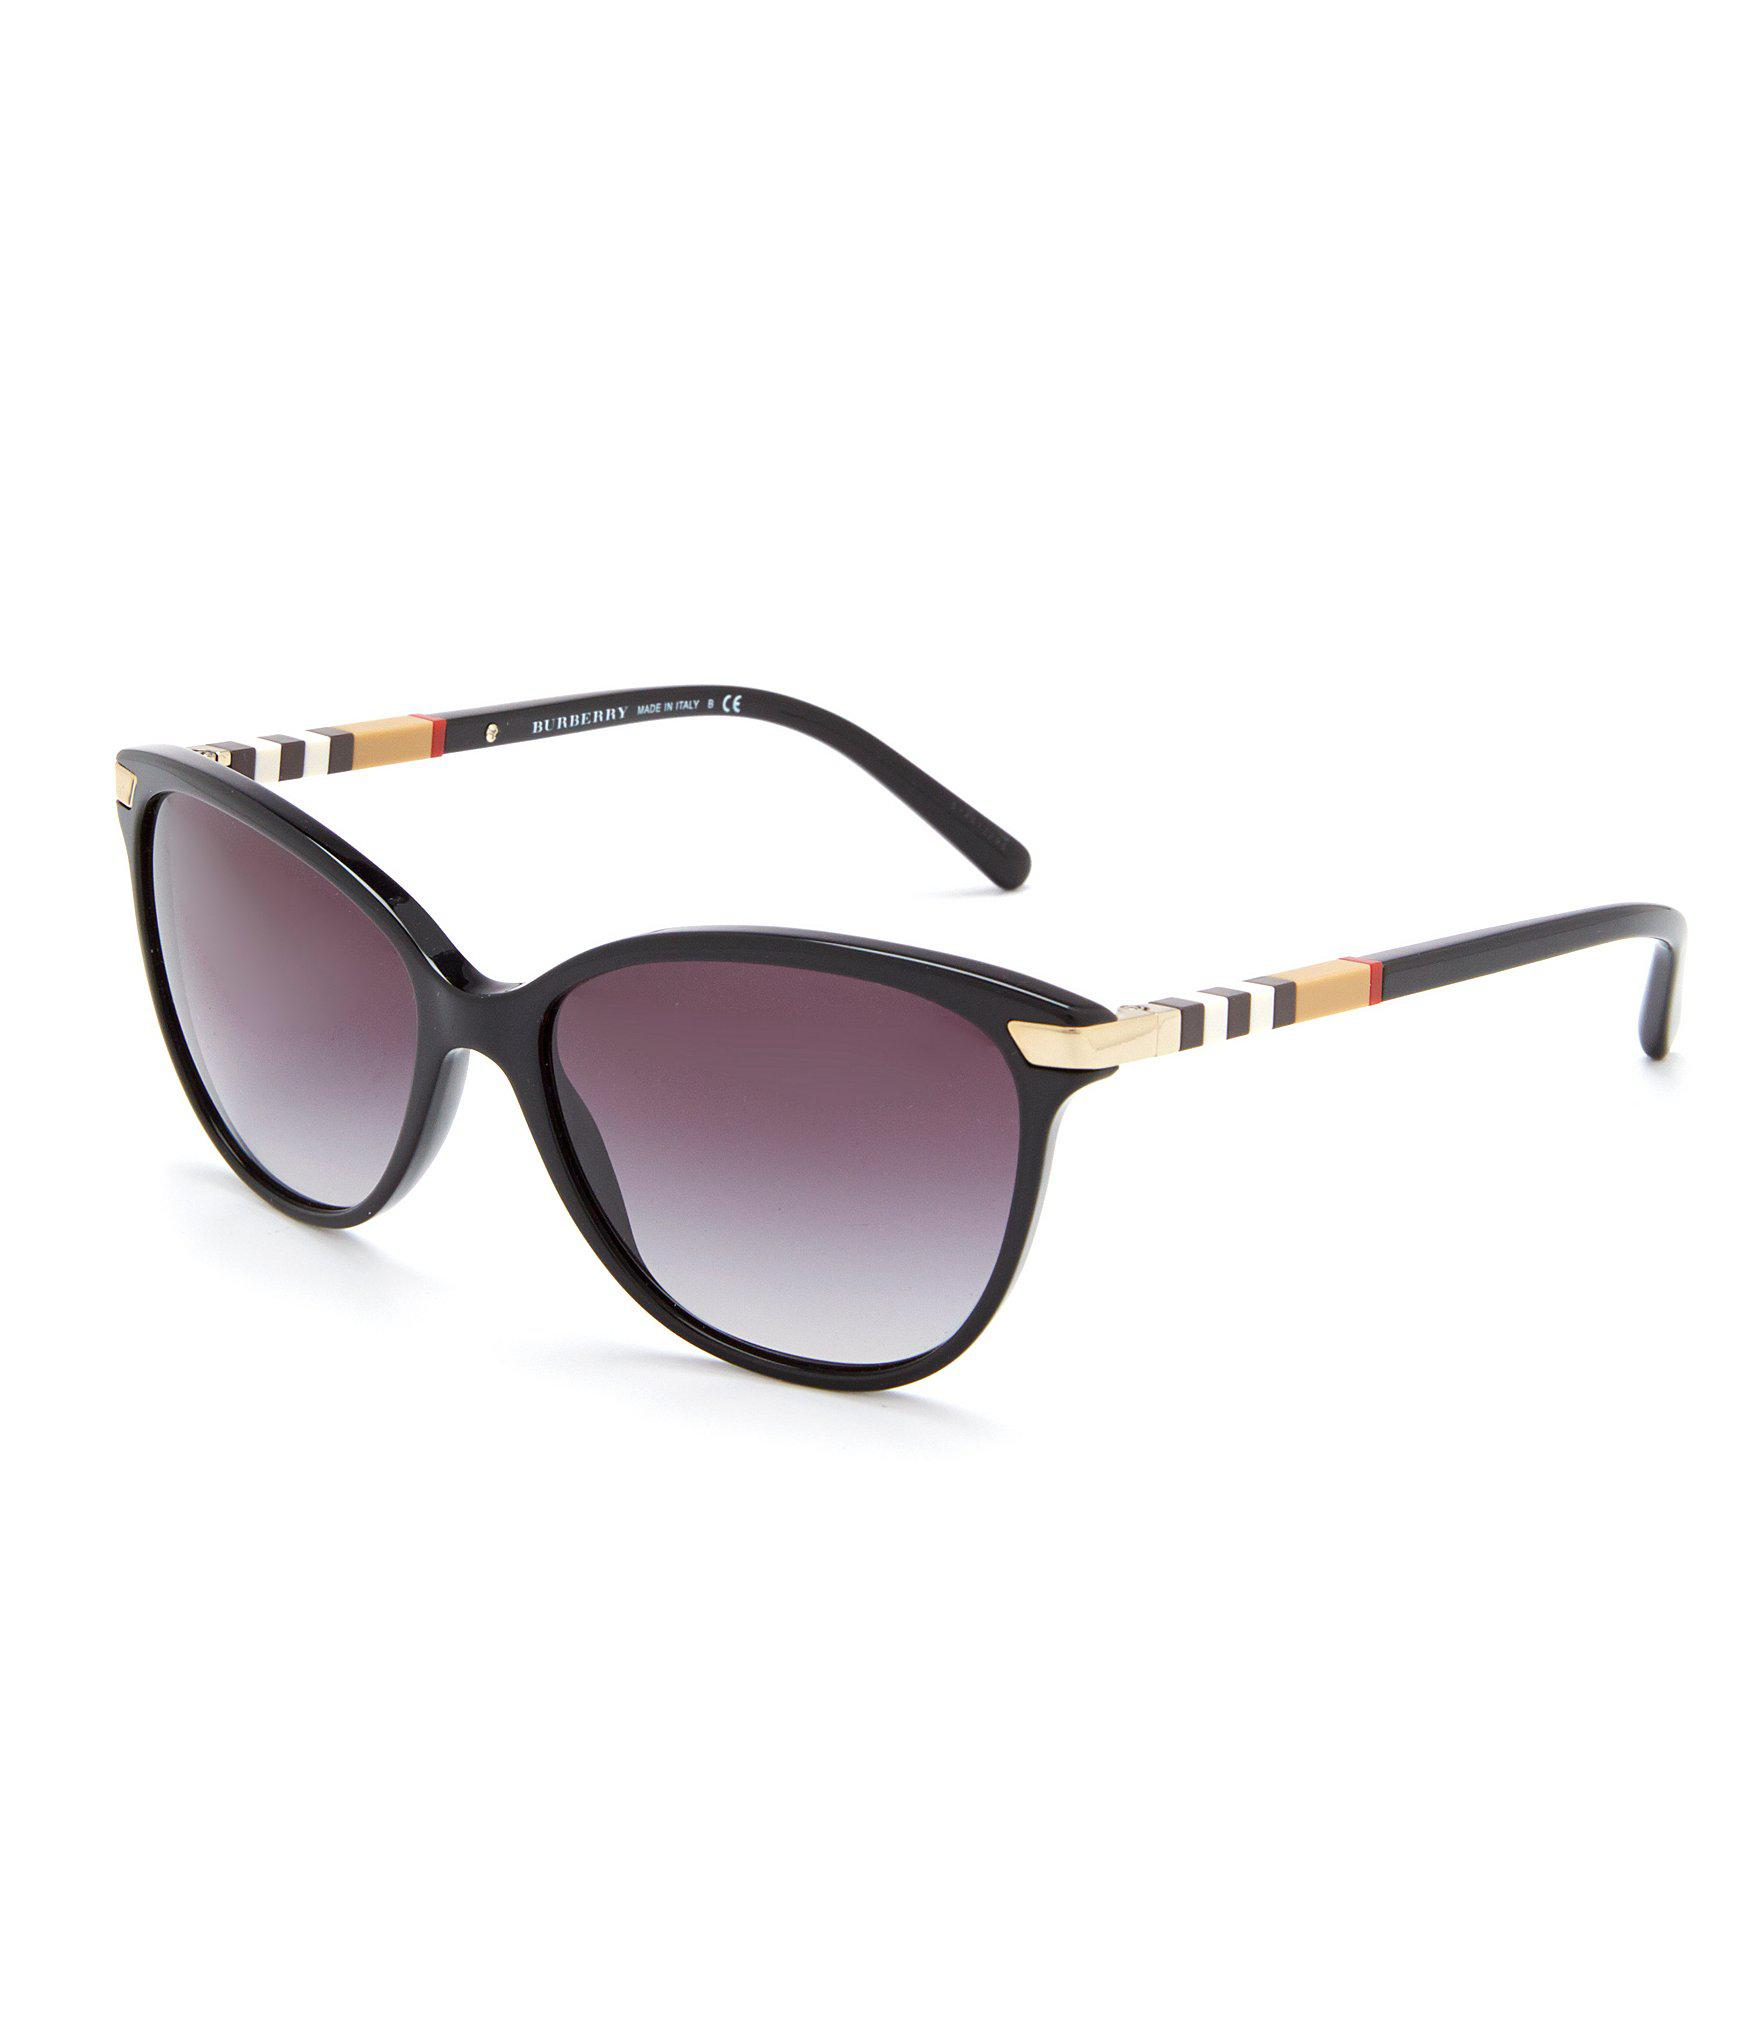 77613cbf93ac Lyst - Burberry Heritage Color Block Square Check Cat Eye Sunglasses ...